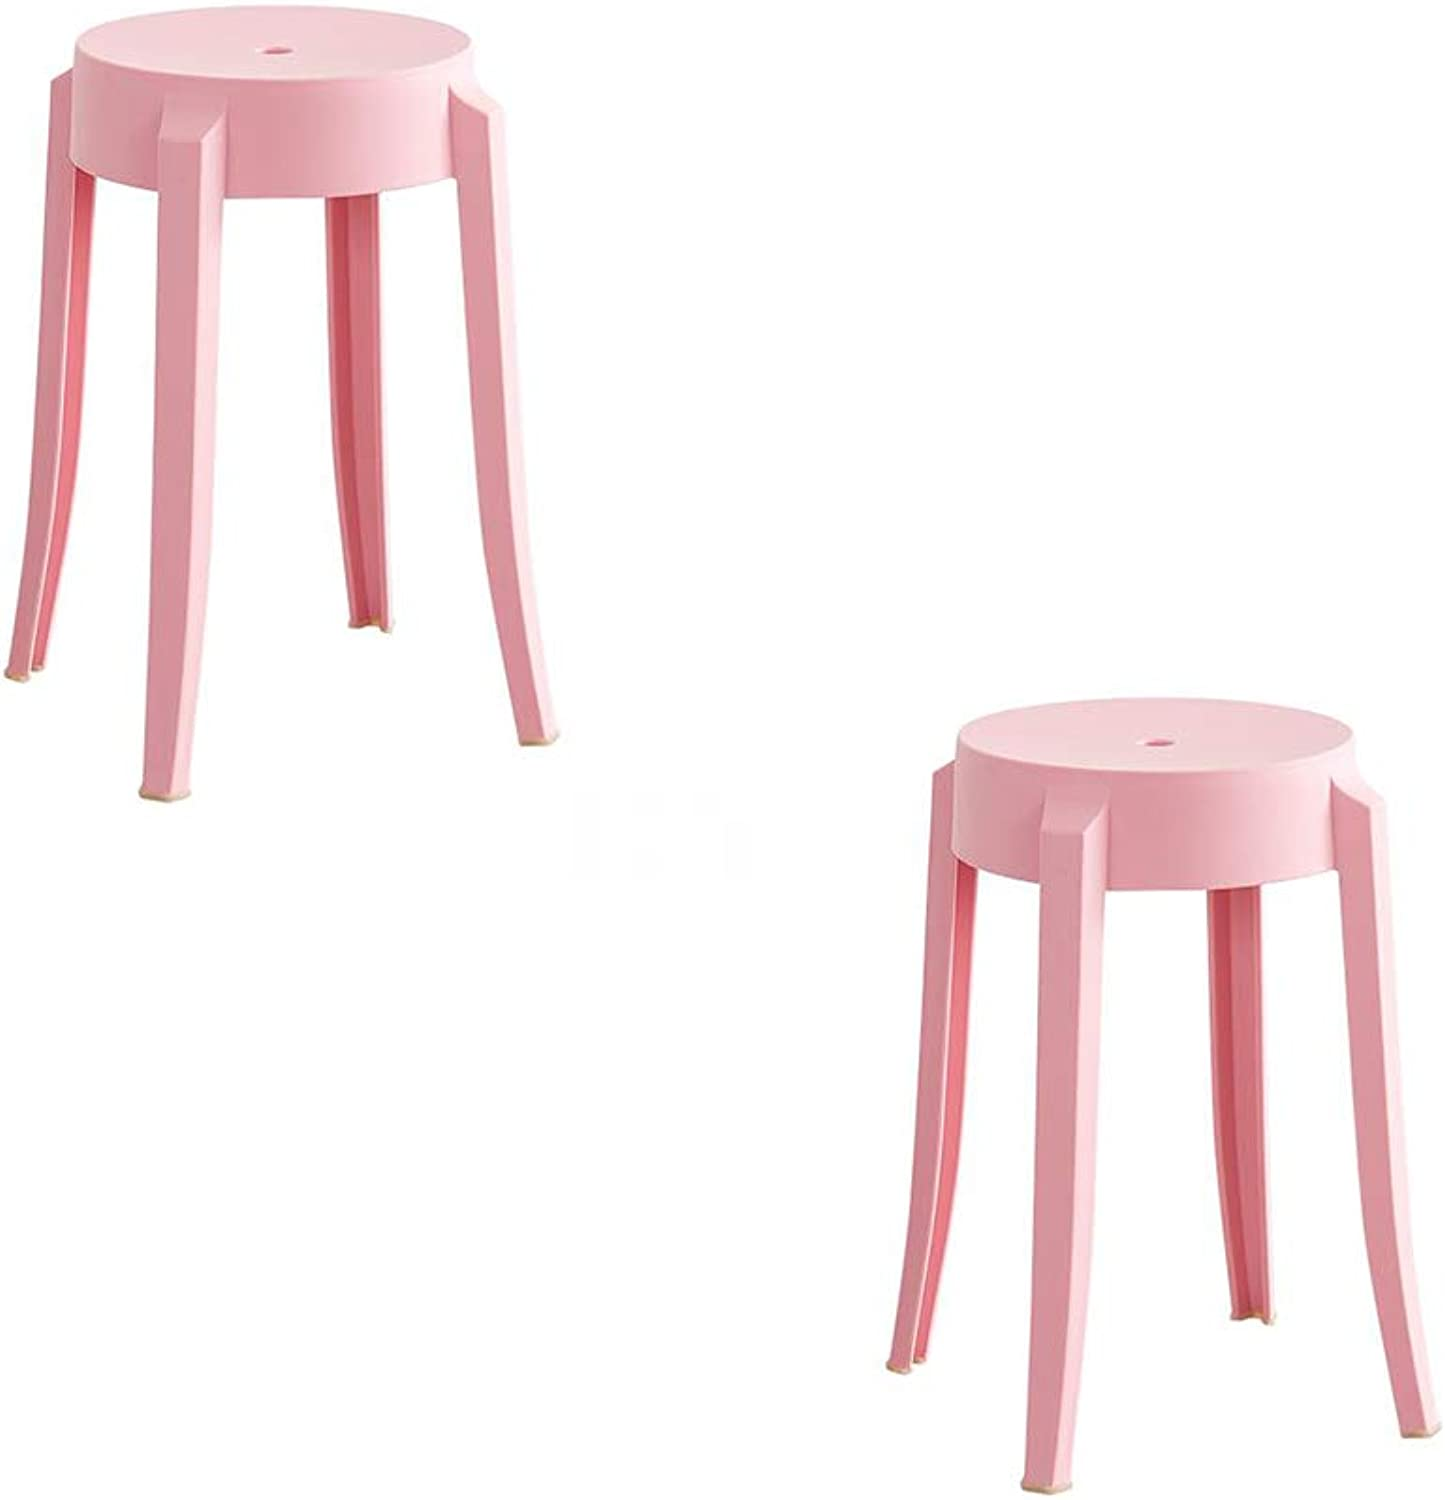 Round Stool, Home Fashion Creative color Plastic Chair, Thick Adult, Living Room Small Bench, Dining Room, High Dining Table Stool,Pink